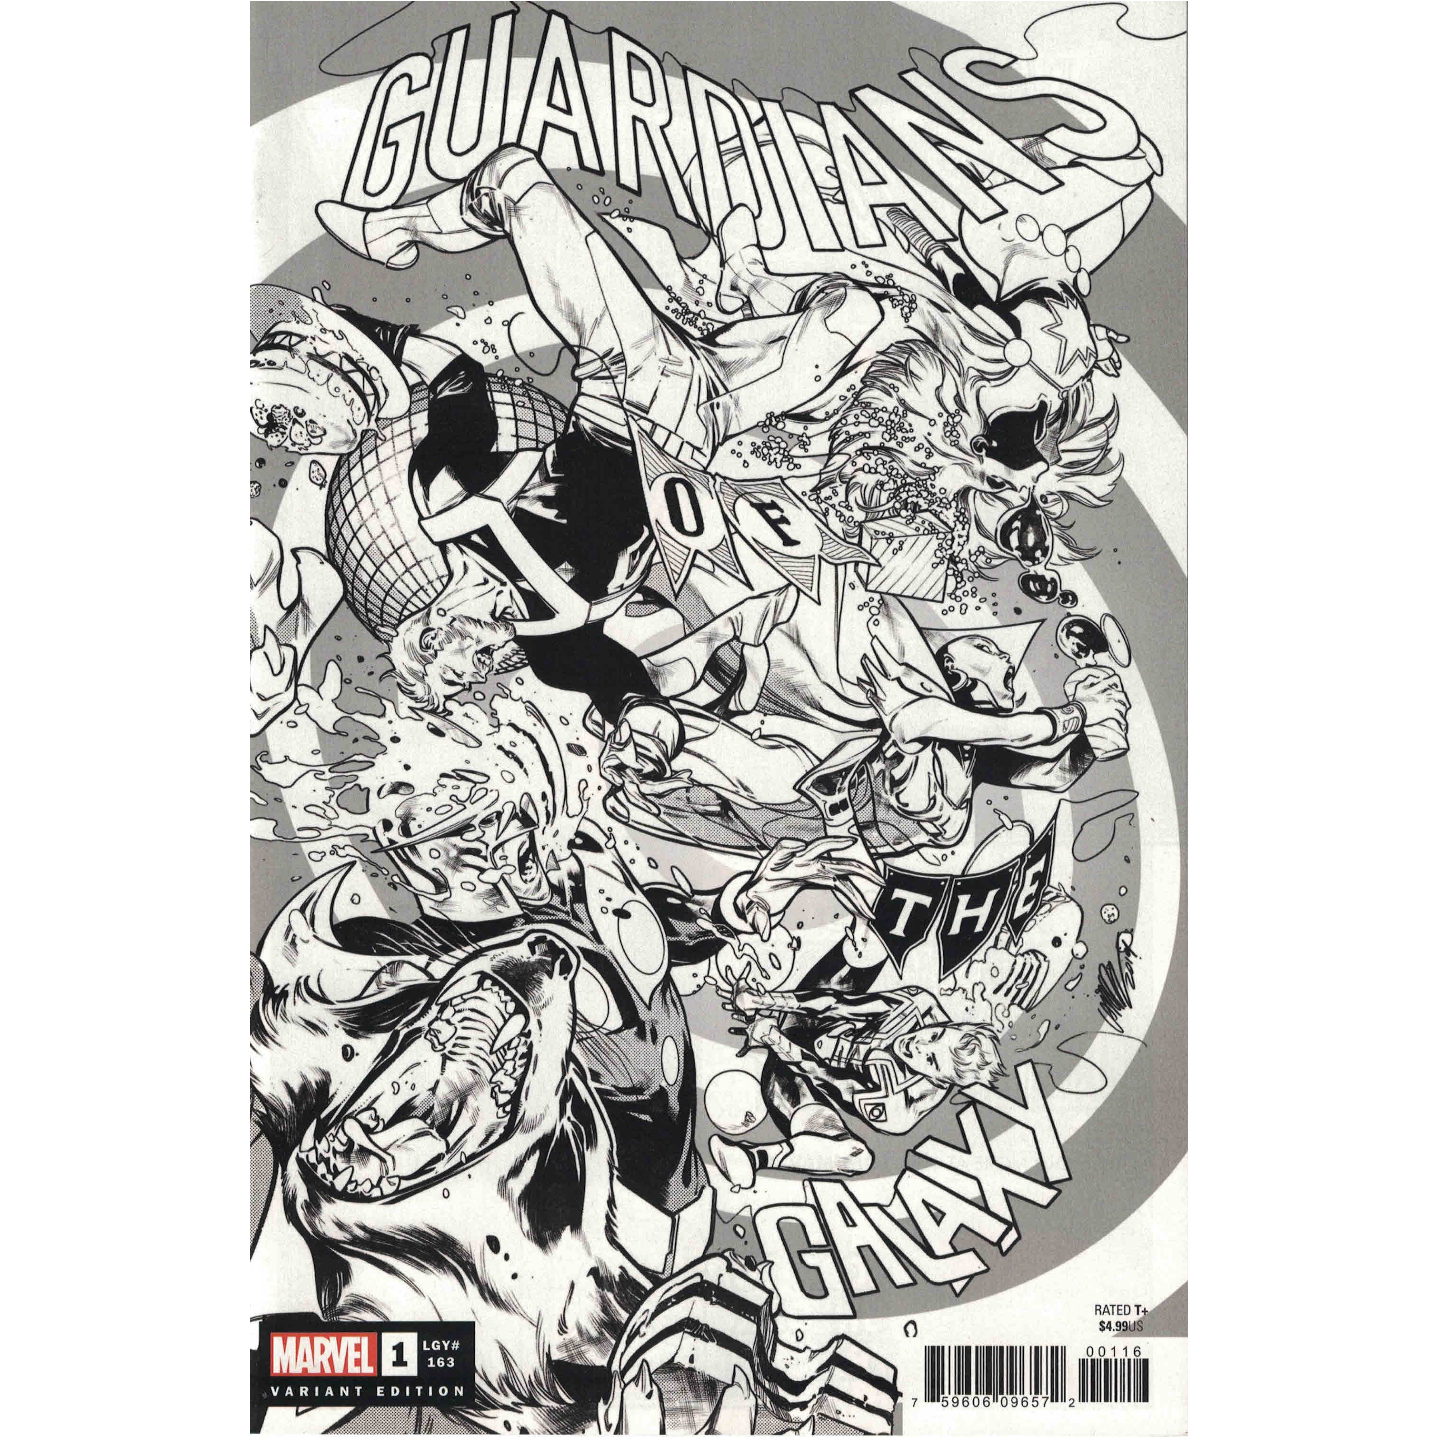 GUARDIANS OF THE GALAXY #1 PEPE LARRAZ PARTY SKETCH VARIANT